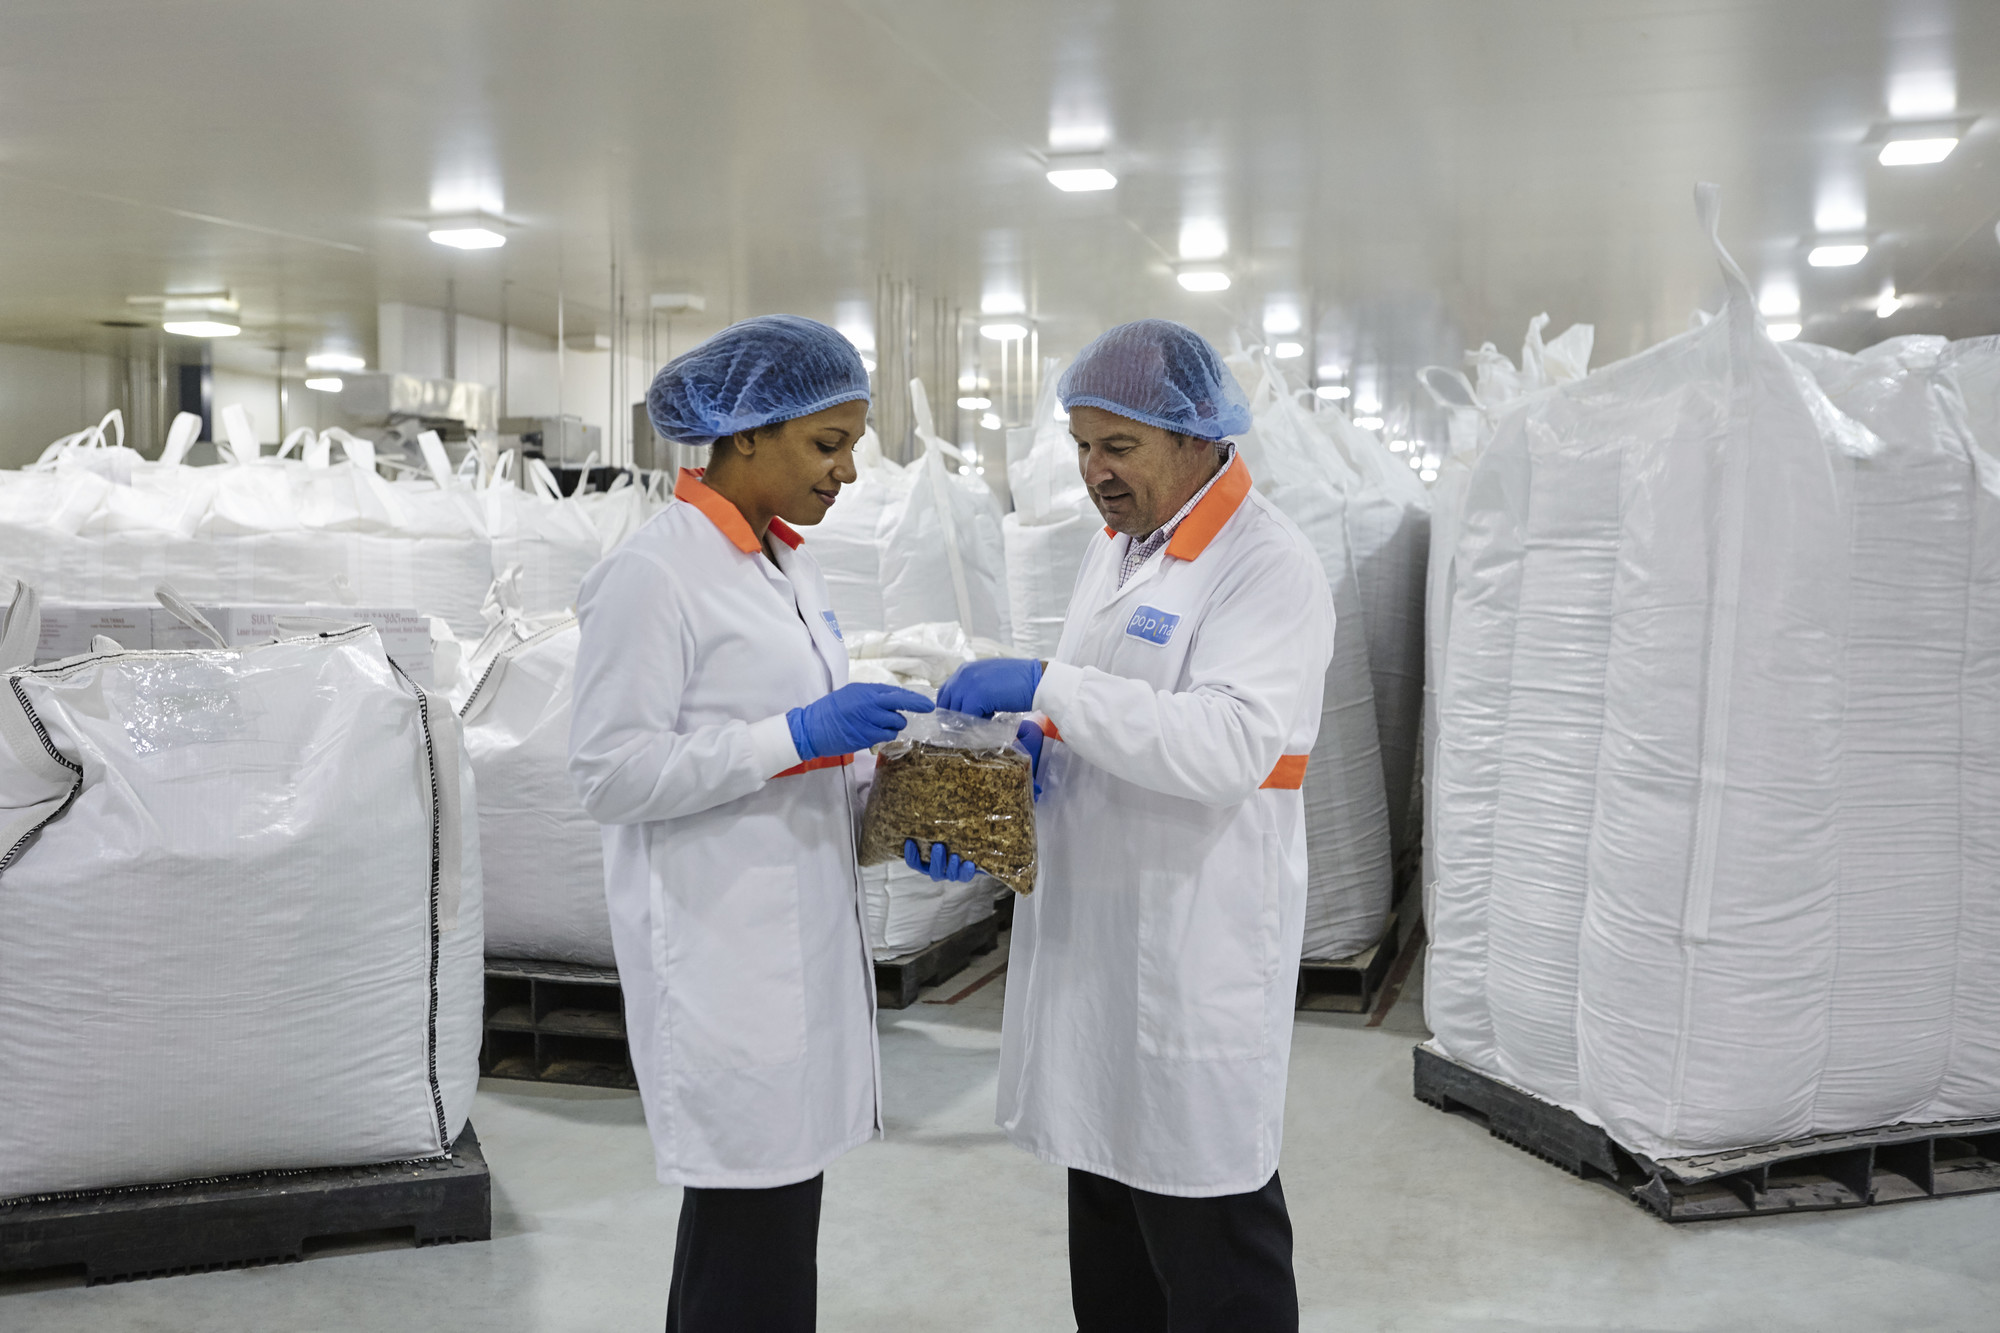 two people in lab coats and hair nets in a factory